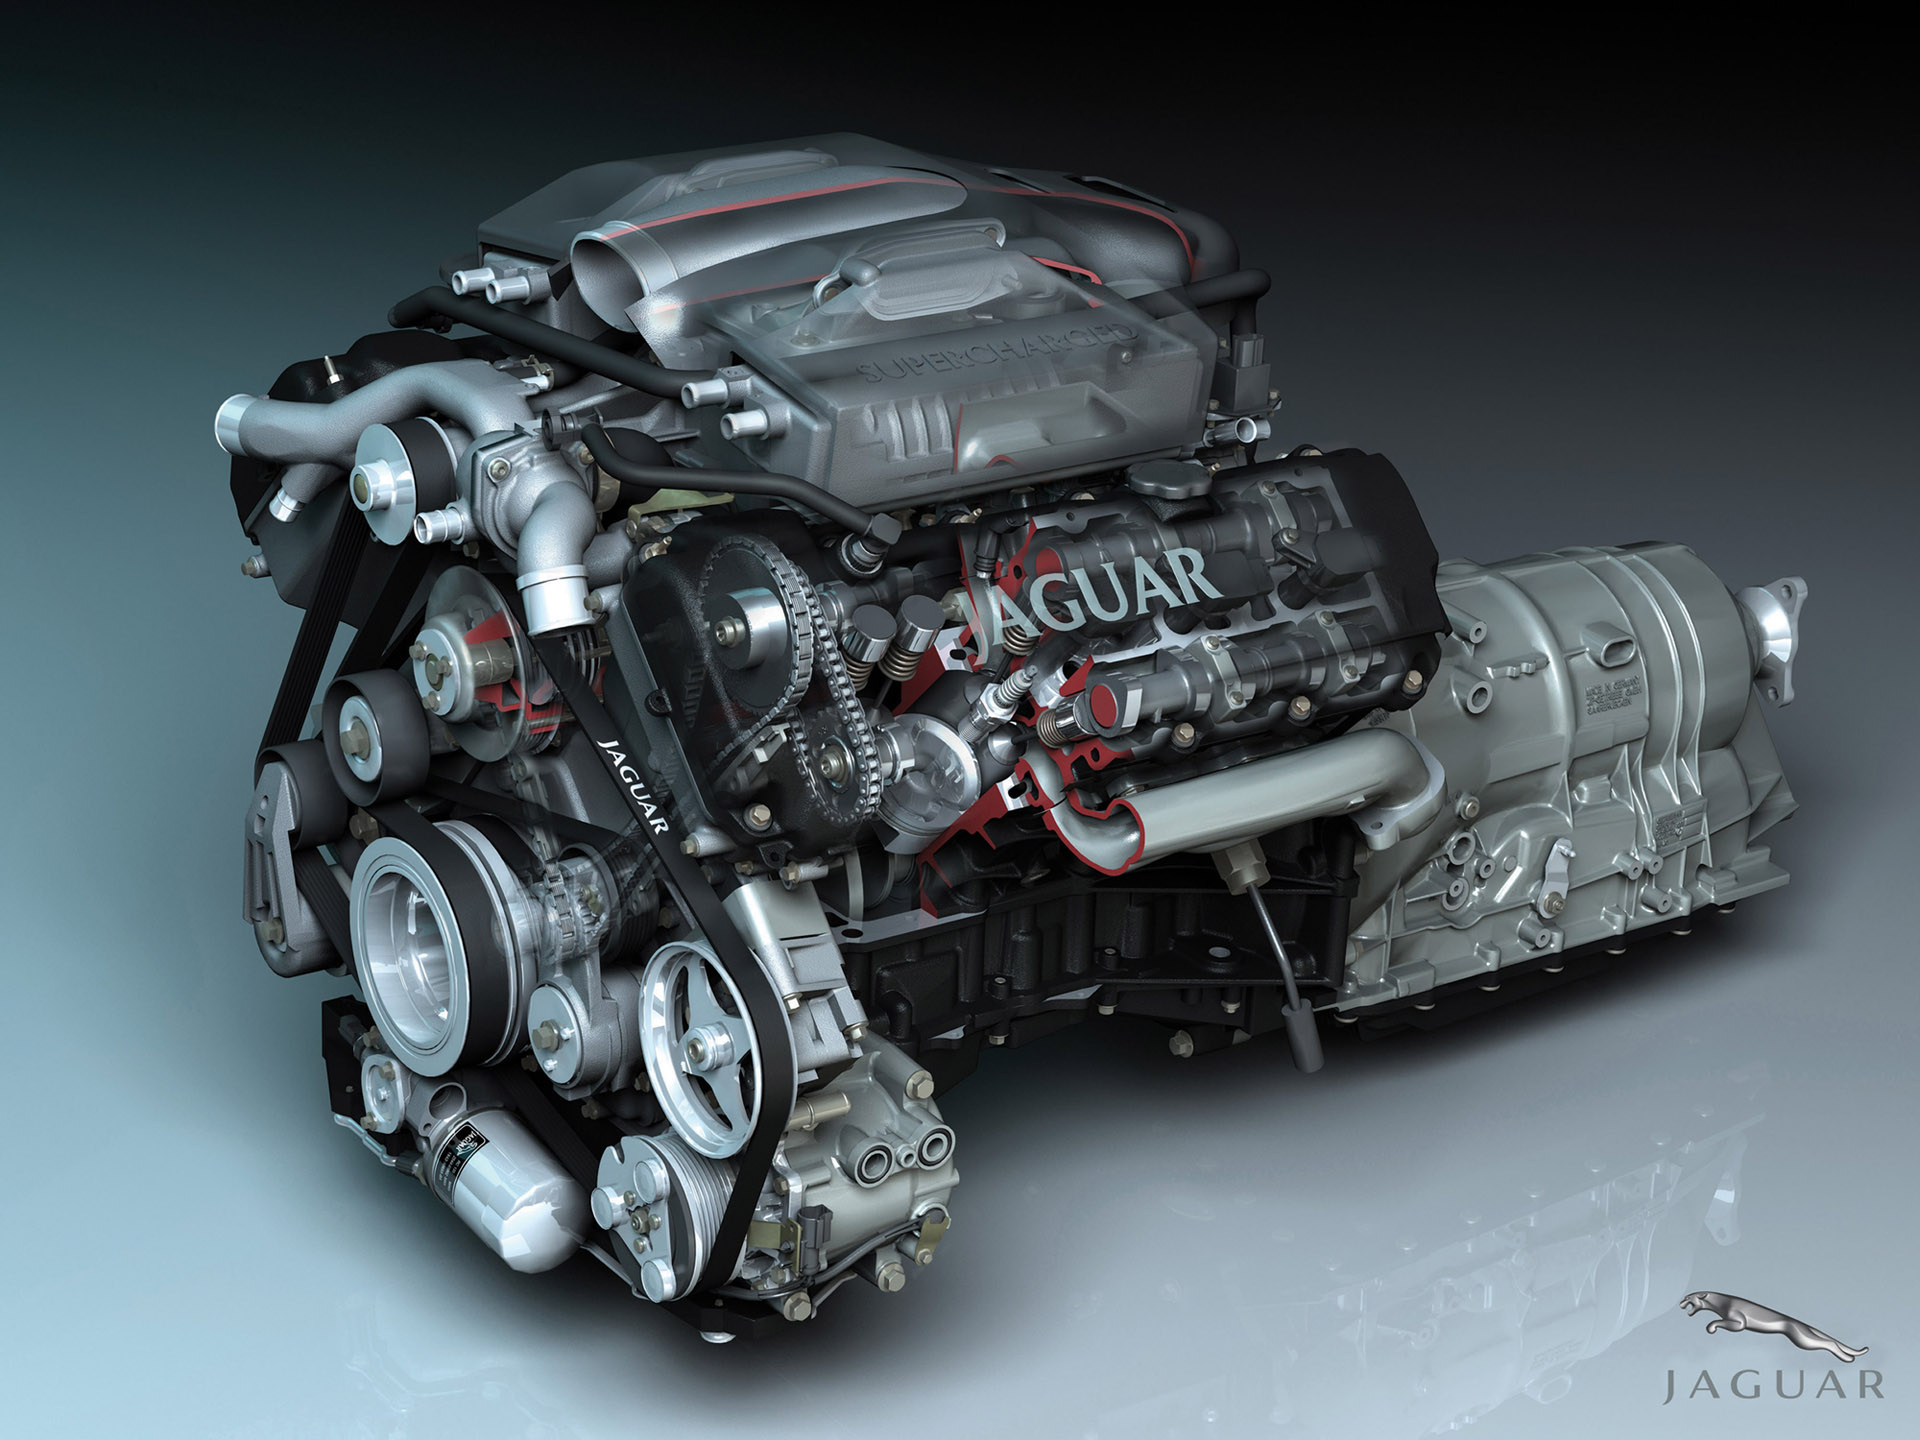 Jaguar X-Type engine #1